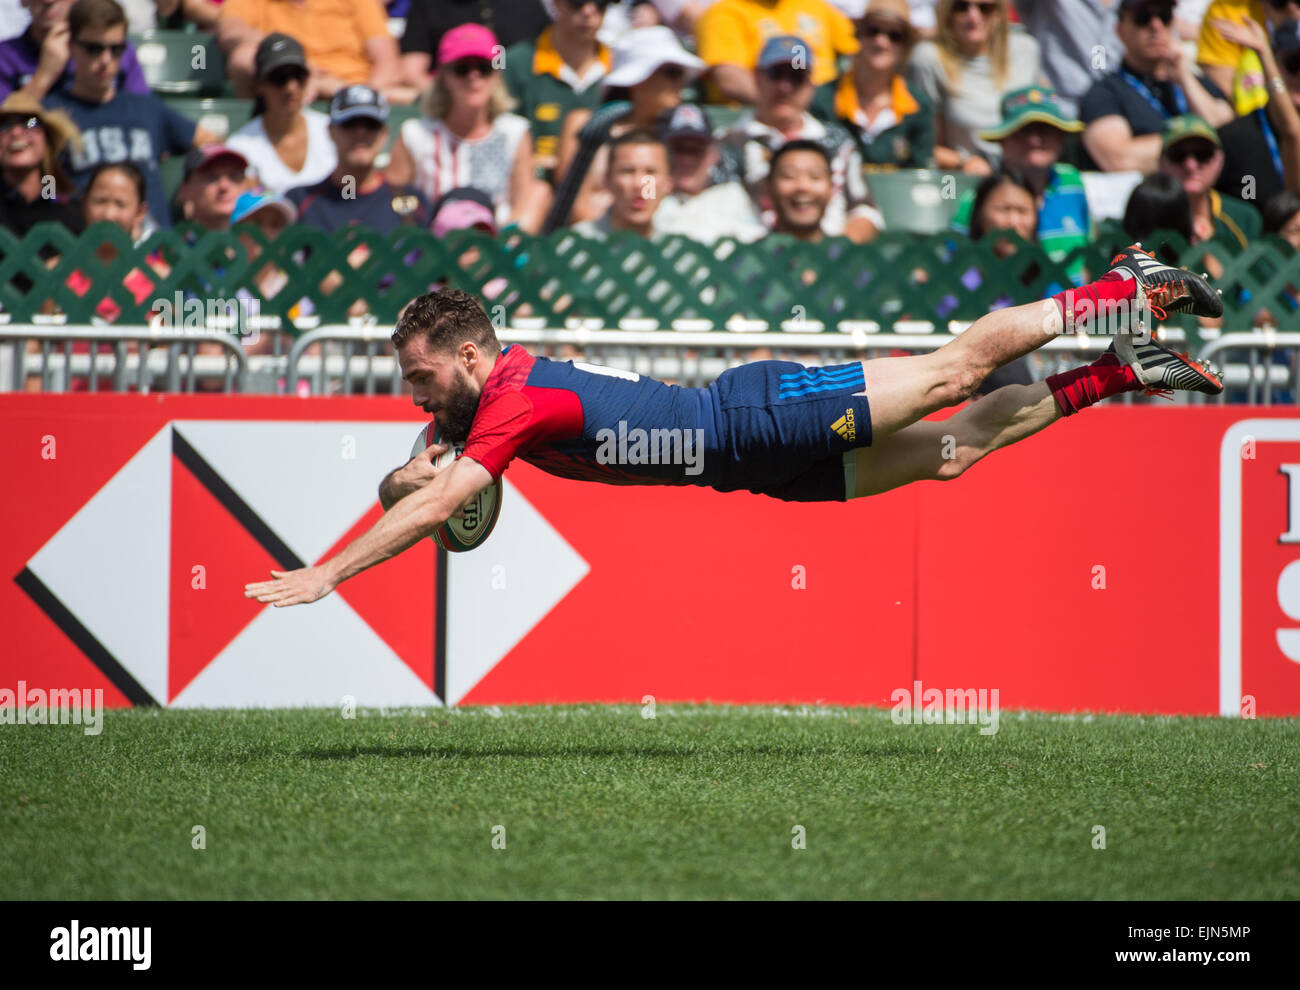 Hong Kong, China. 28th Mar, 2015. Terry Bouhraoua of France flies down the wing to score a try virtually unhindered.France Stock Photo